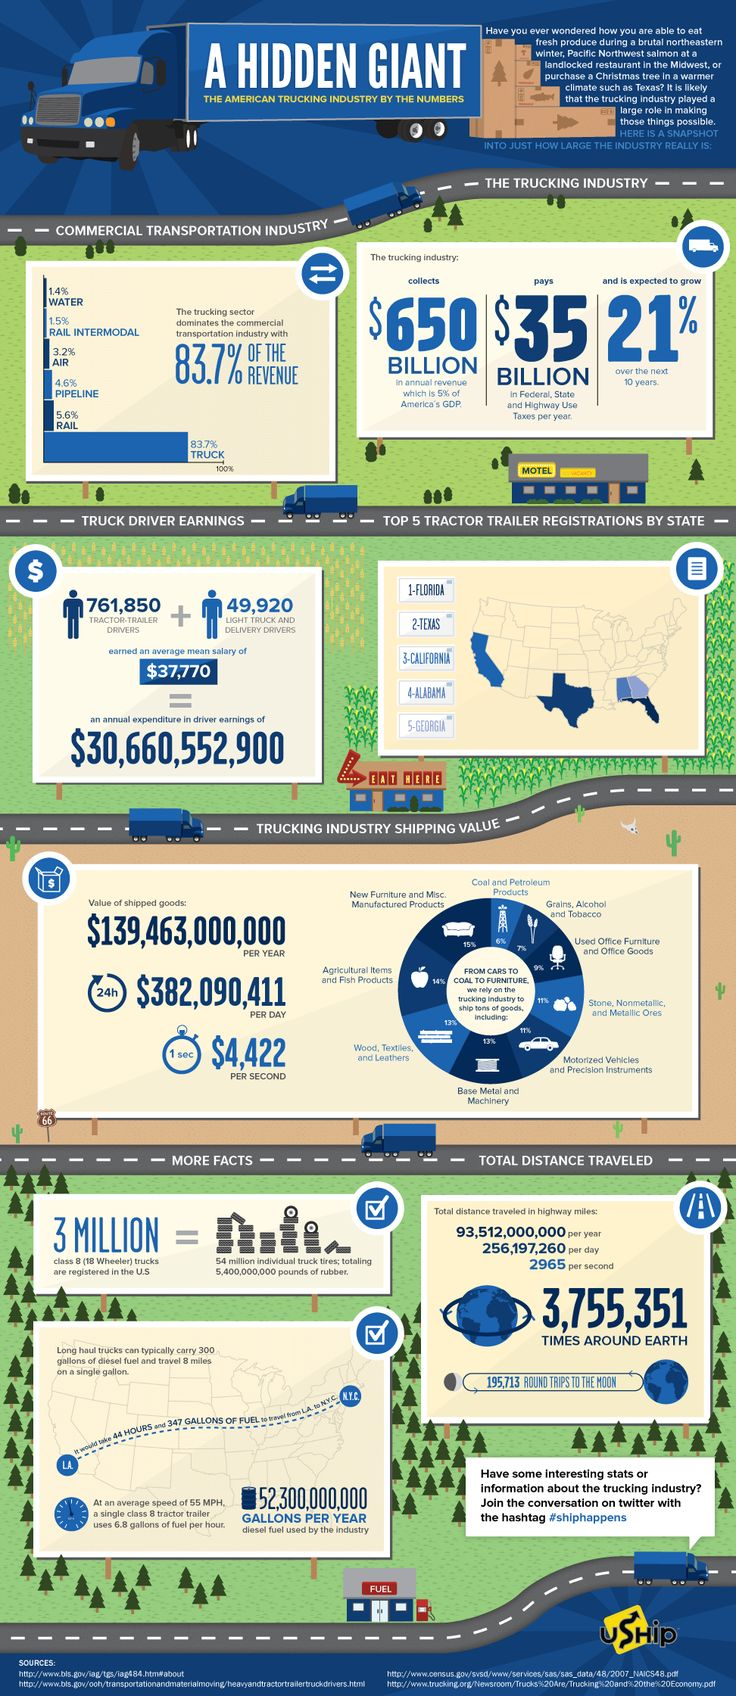 A Hidden Gian - The American Trucking Industry by the Numbers